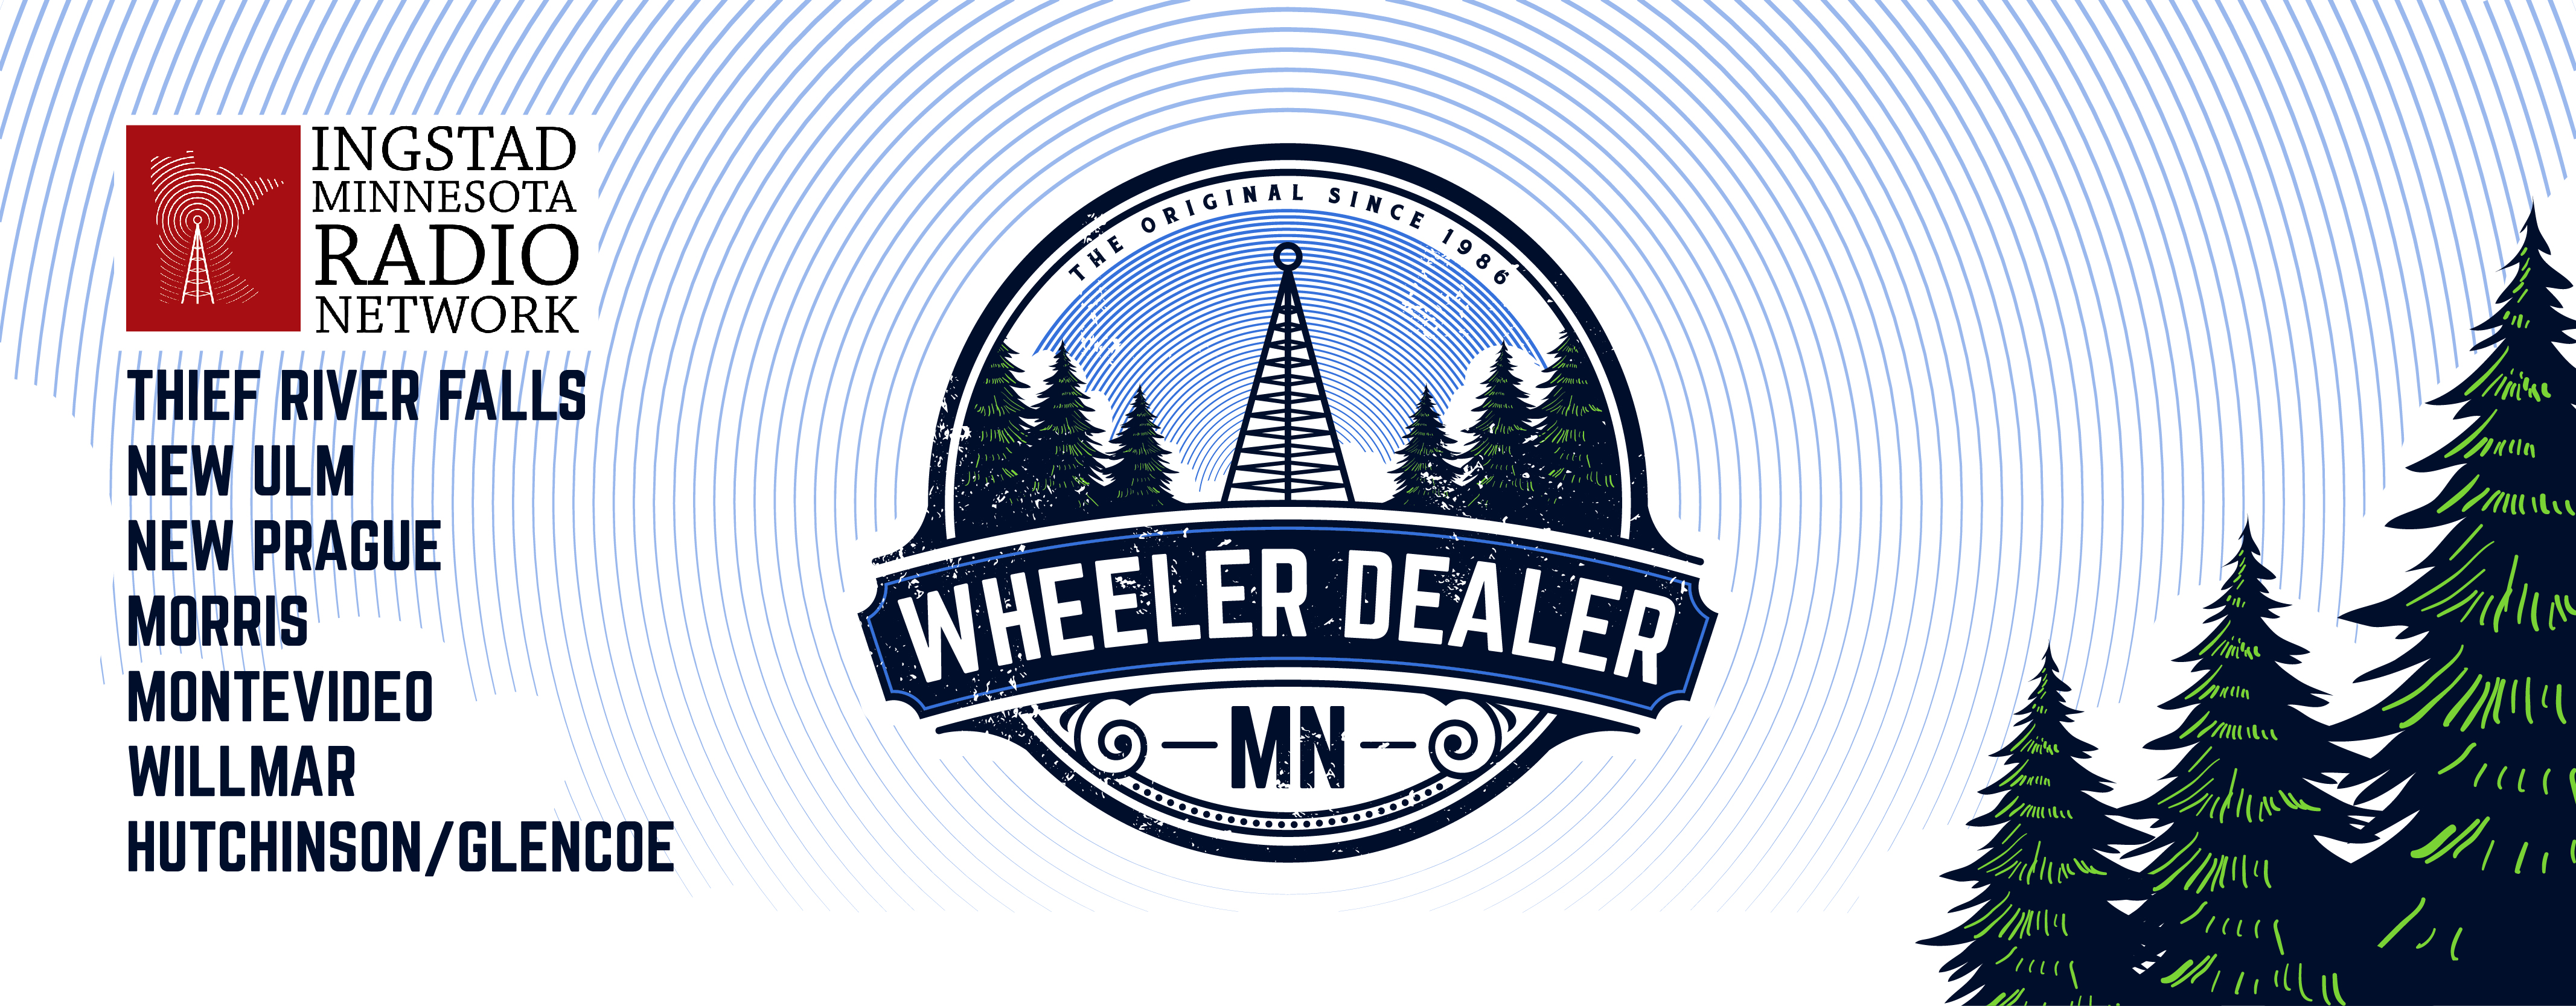 Wheeler Dealer MN